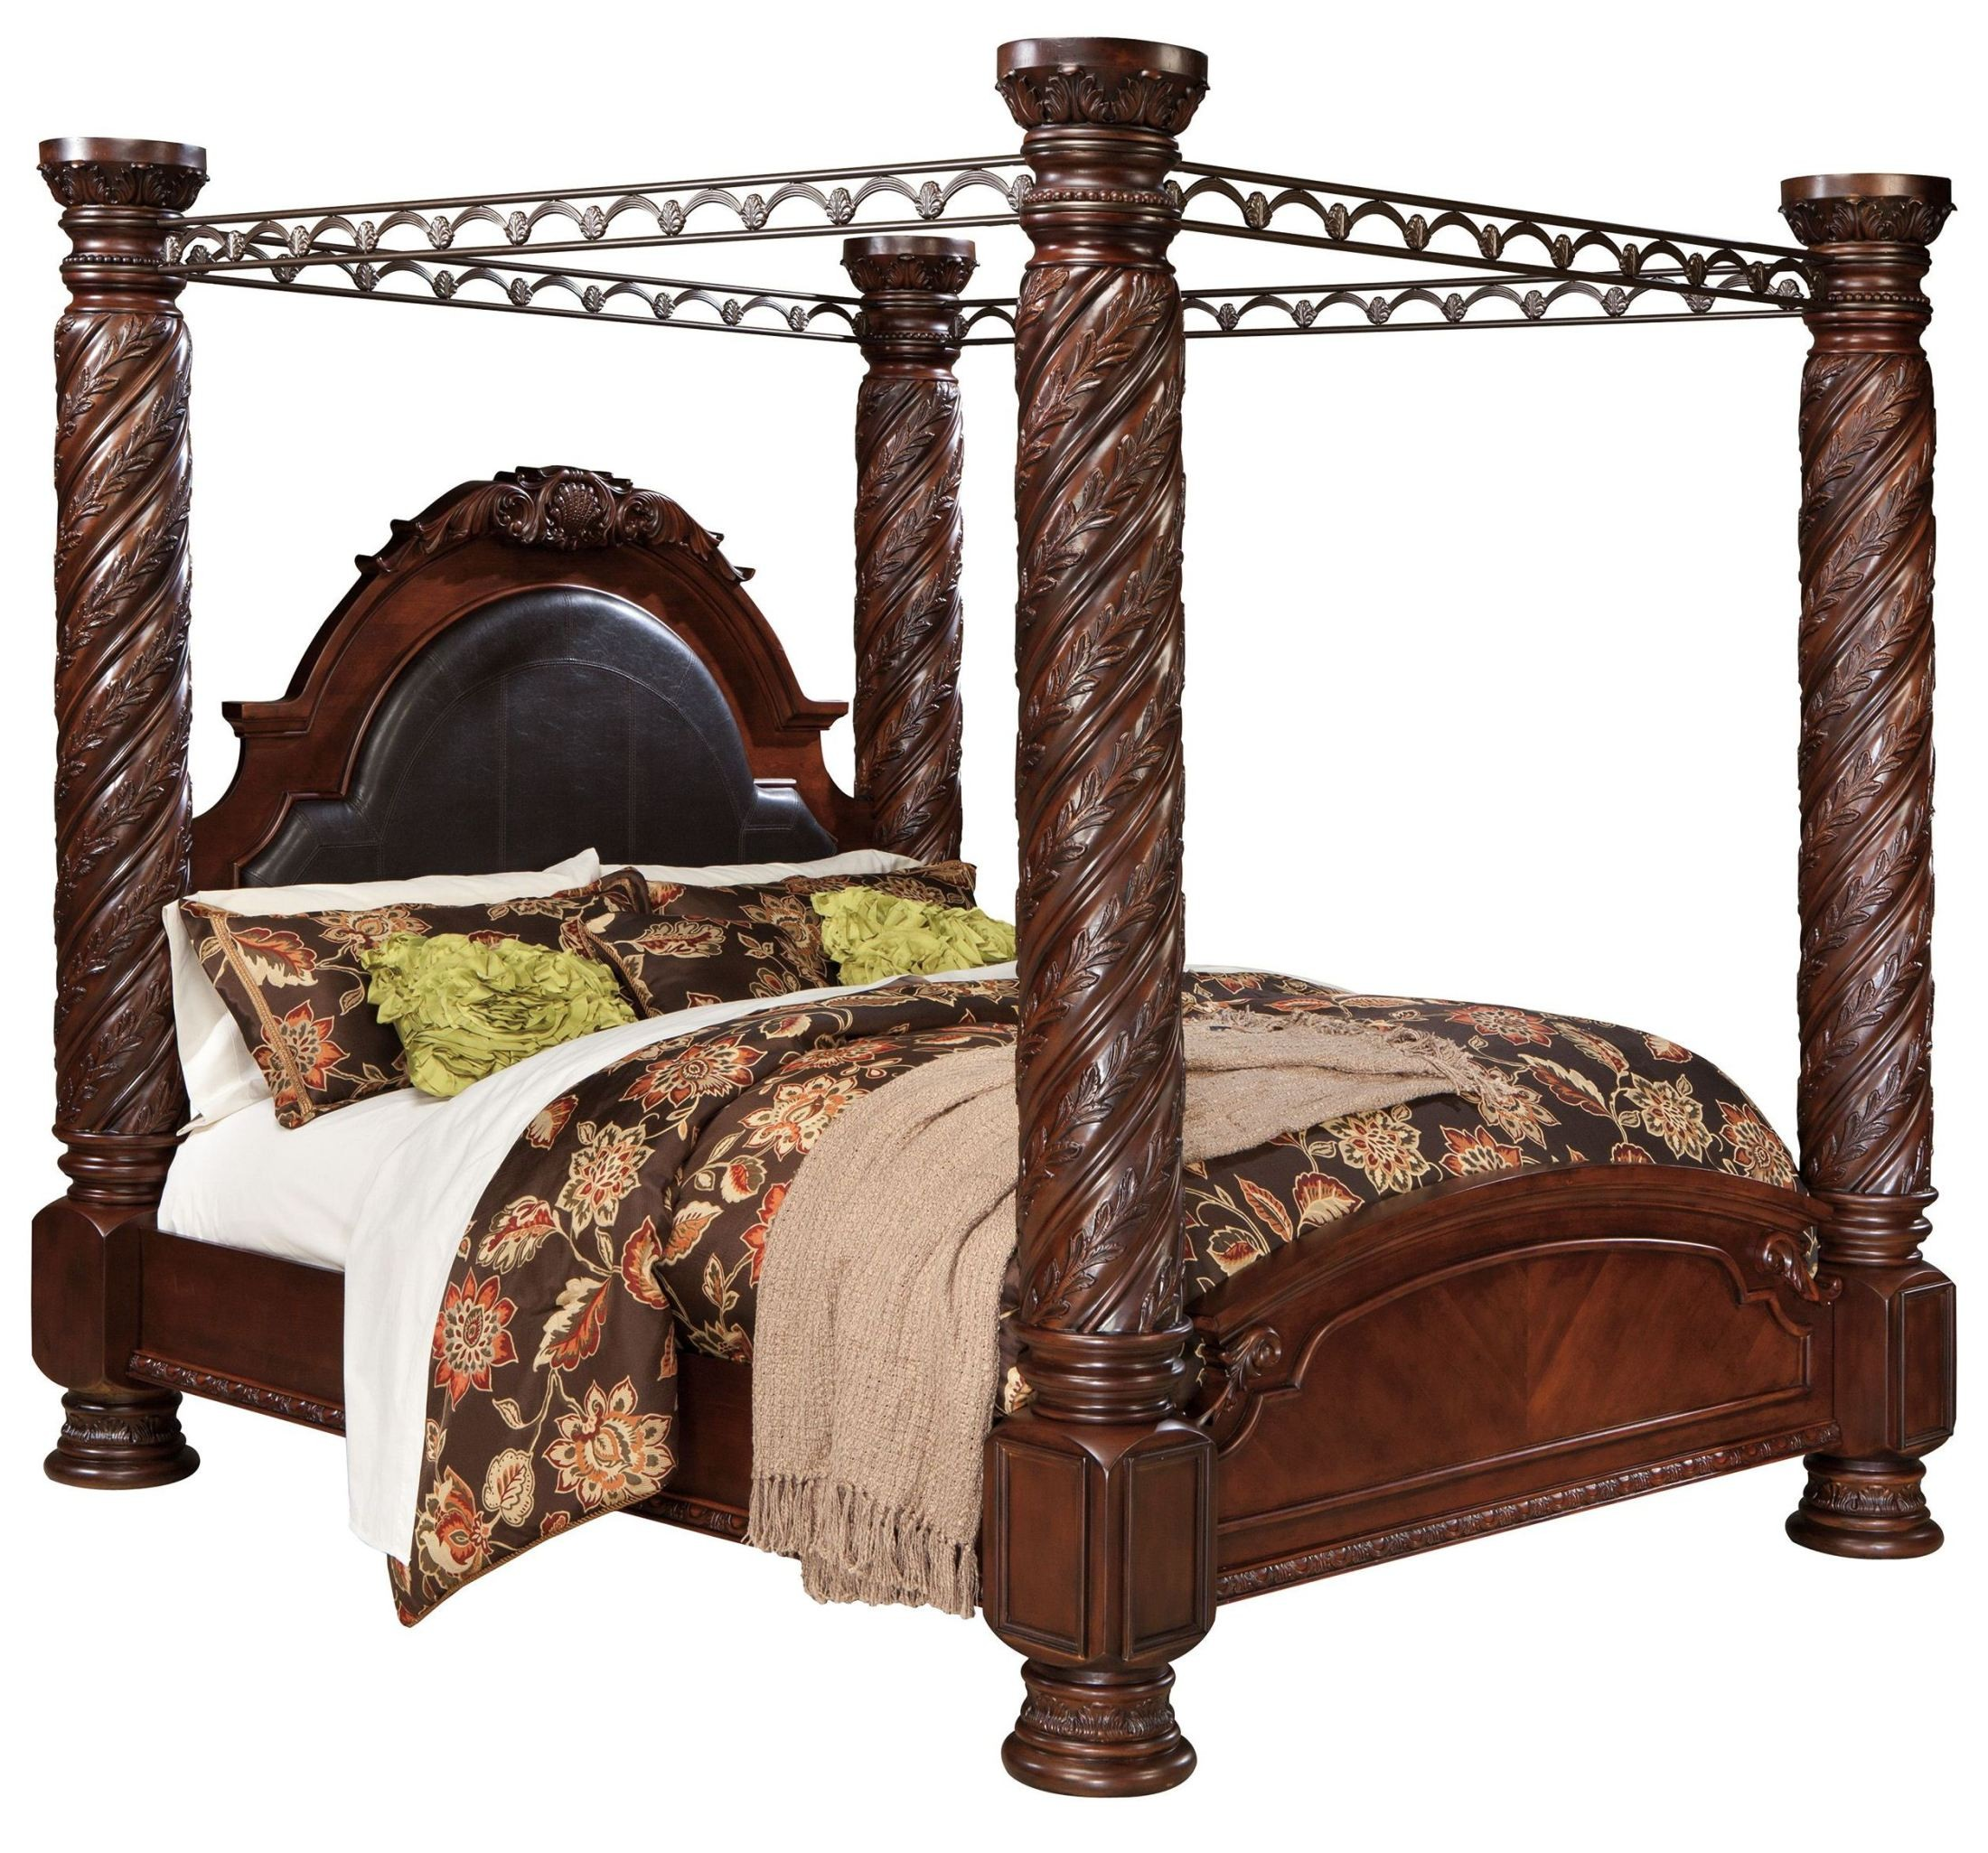 Bedroom sets coleman furniture - North Shore Cal King Poster Bed With Canopy